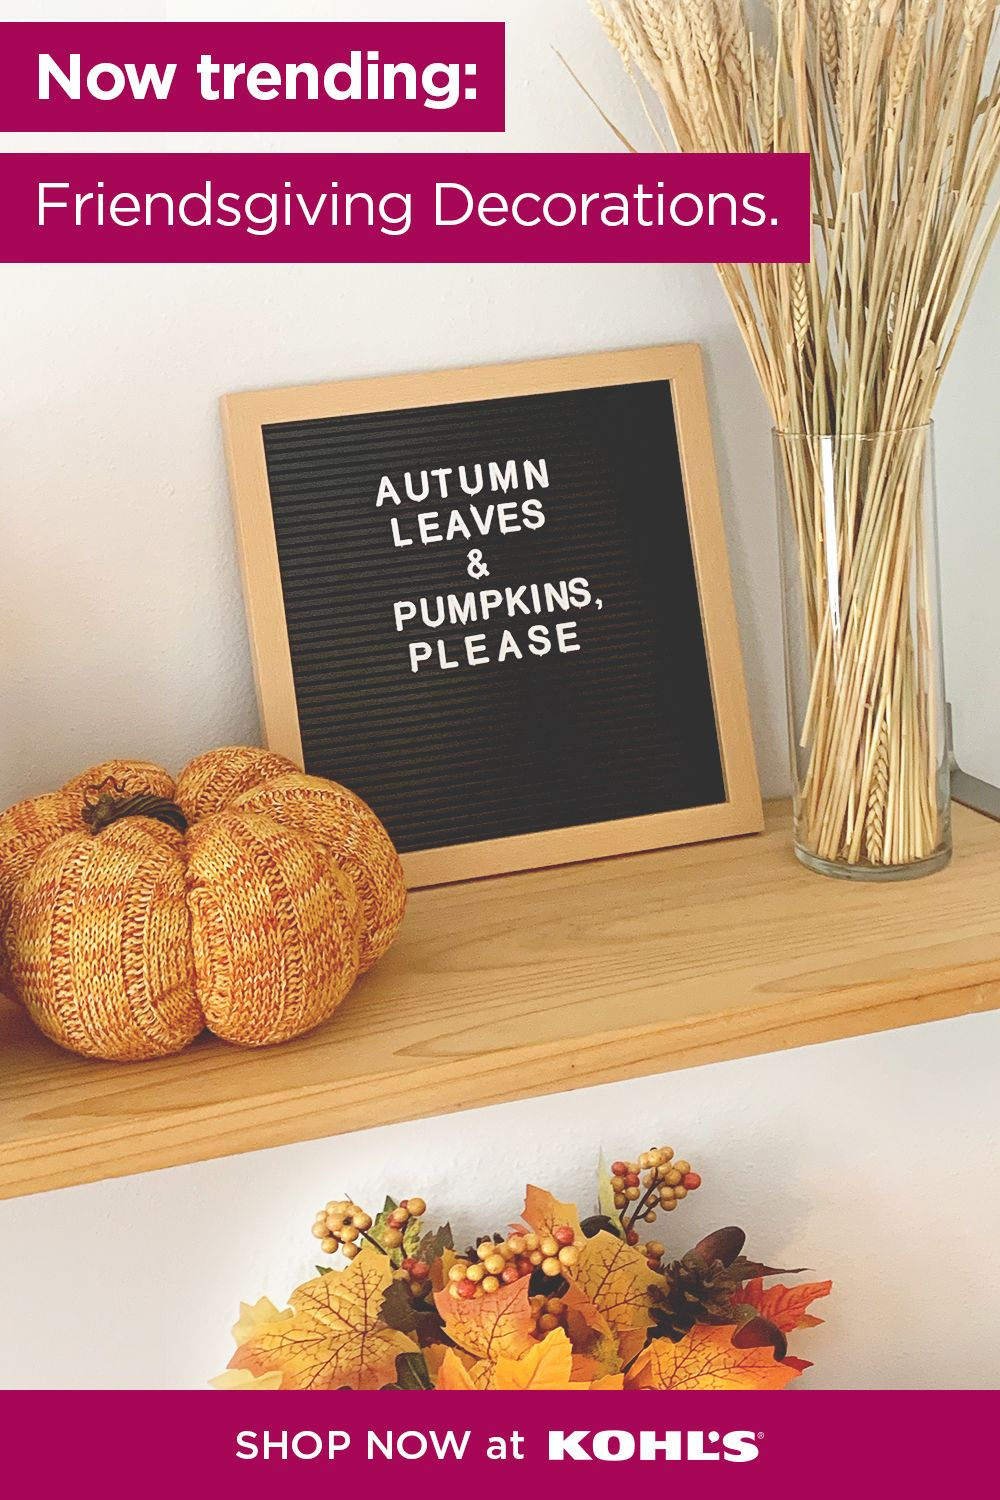 Find Friendsgiving Decor And More At Kohl S In 2020 Friendsgiving Decorations Fall Decor Diy Thanksgiving Inspiration